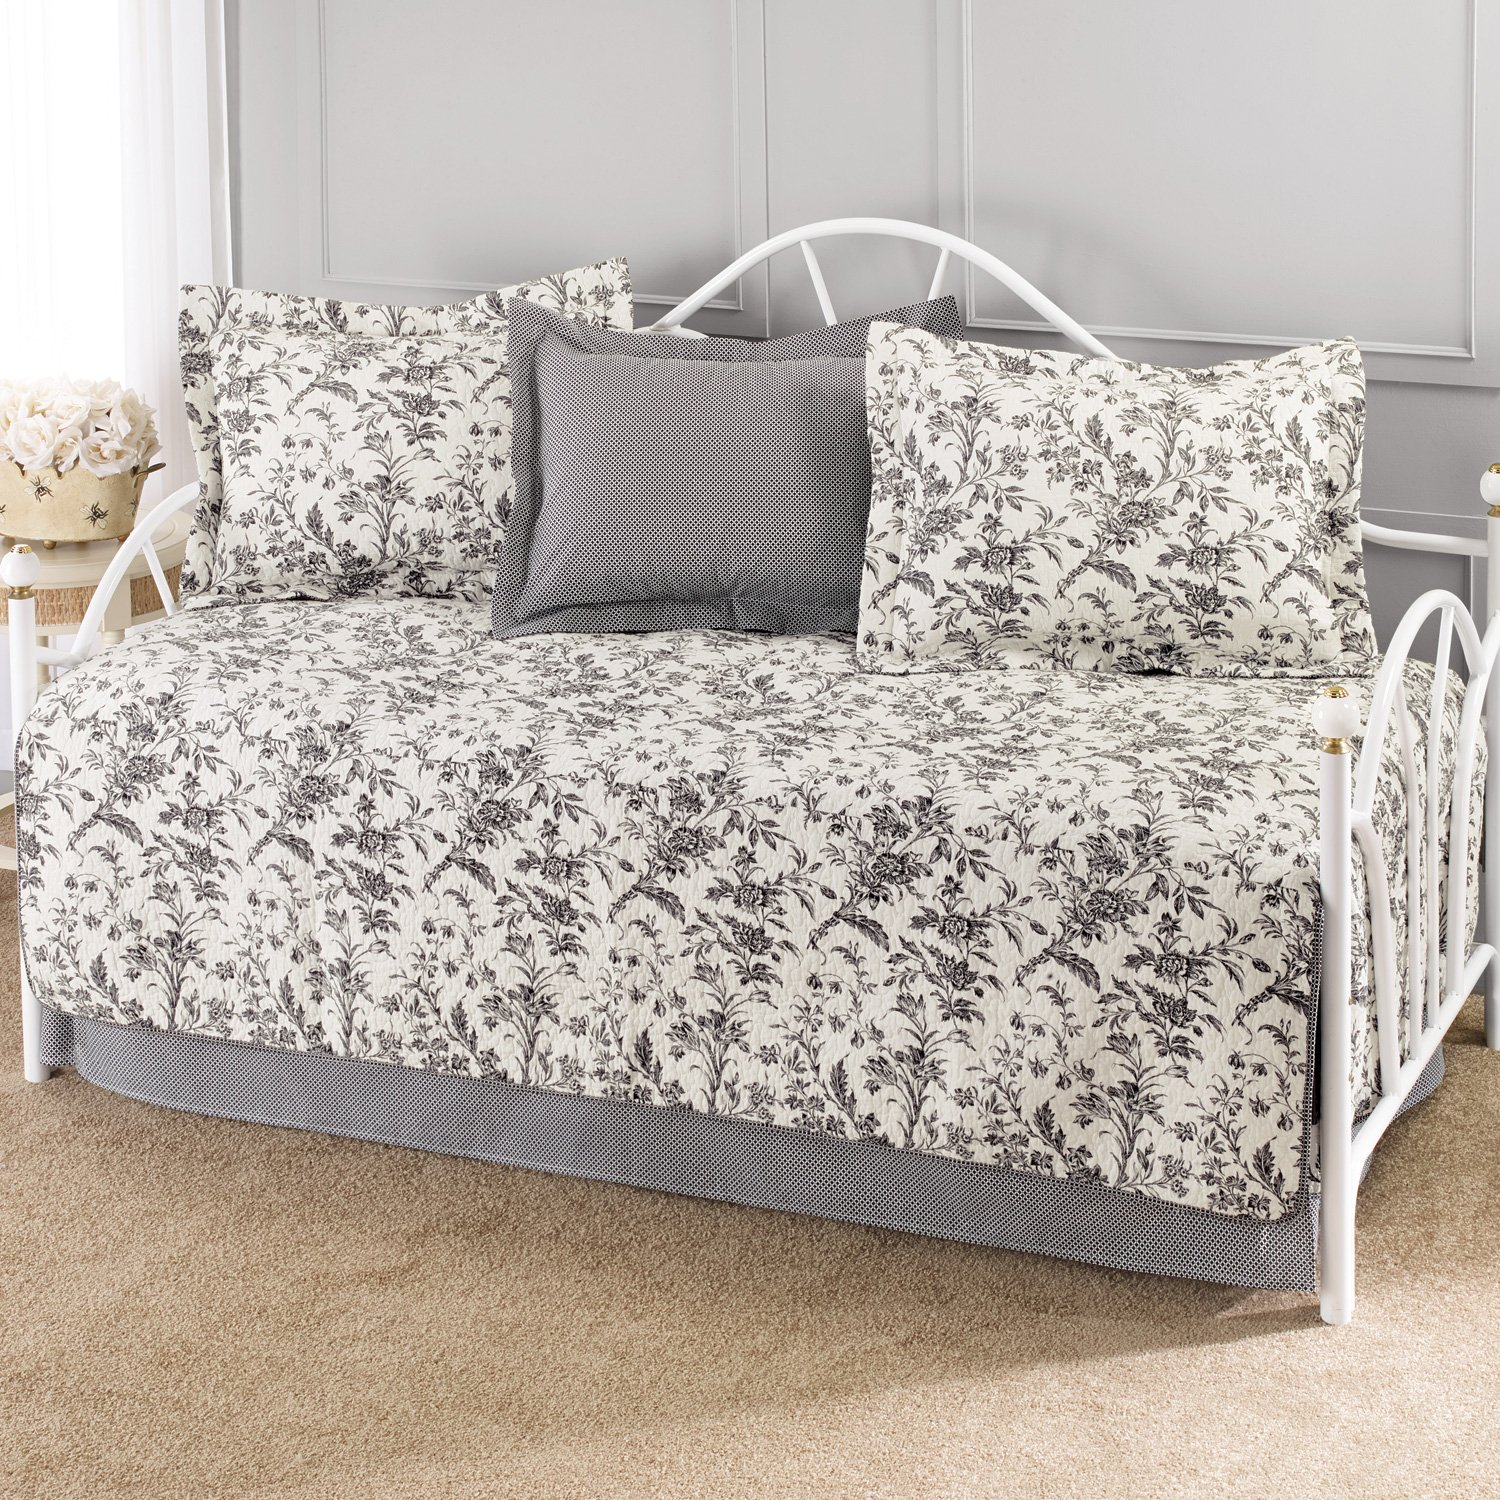 Amazon com  Laura Ashley Amberley 5 Piece Cotton Daybed Quilt Set Twin  Home    Kitchen. Amazon com  Laura Ashley Amberley 5 Piece Cotton Daybed Quilt Set